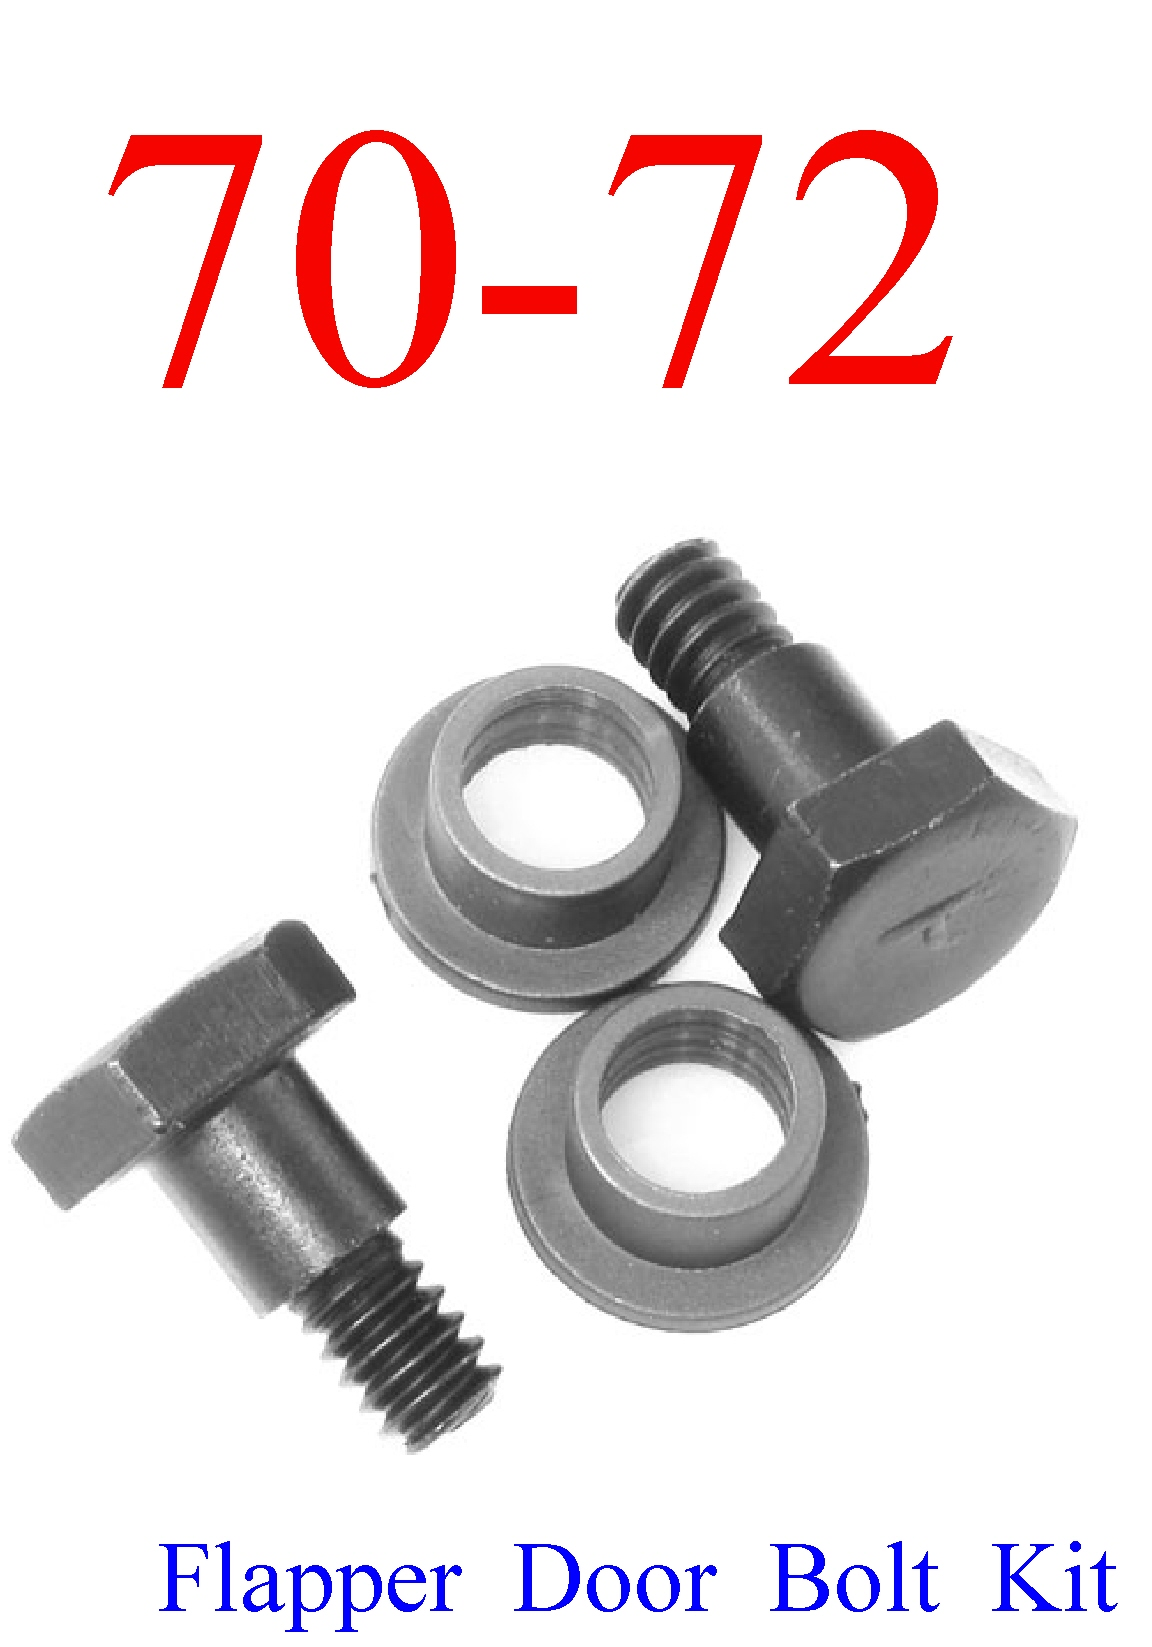 70-72 Chevy Chevelle SS 4Pc Flapper Door Bolt Kit